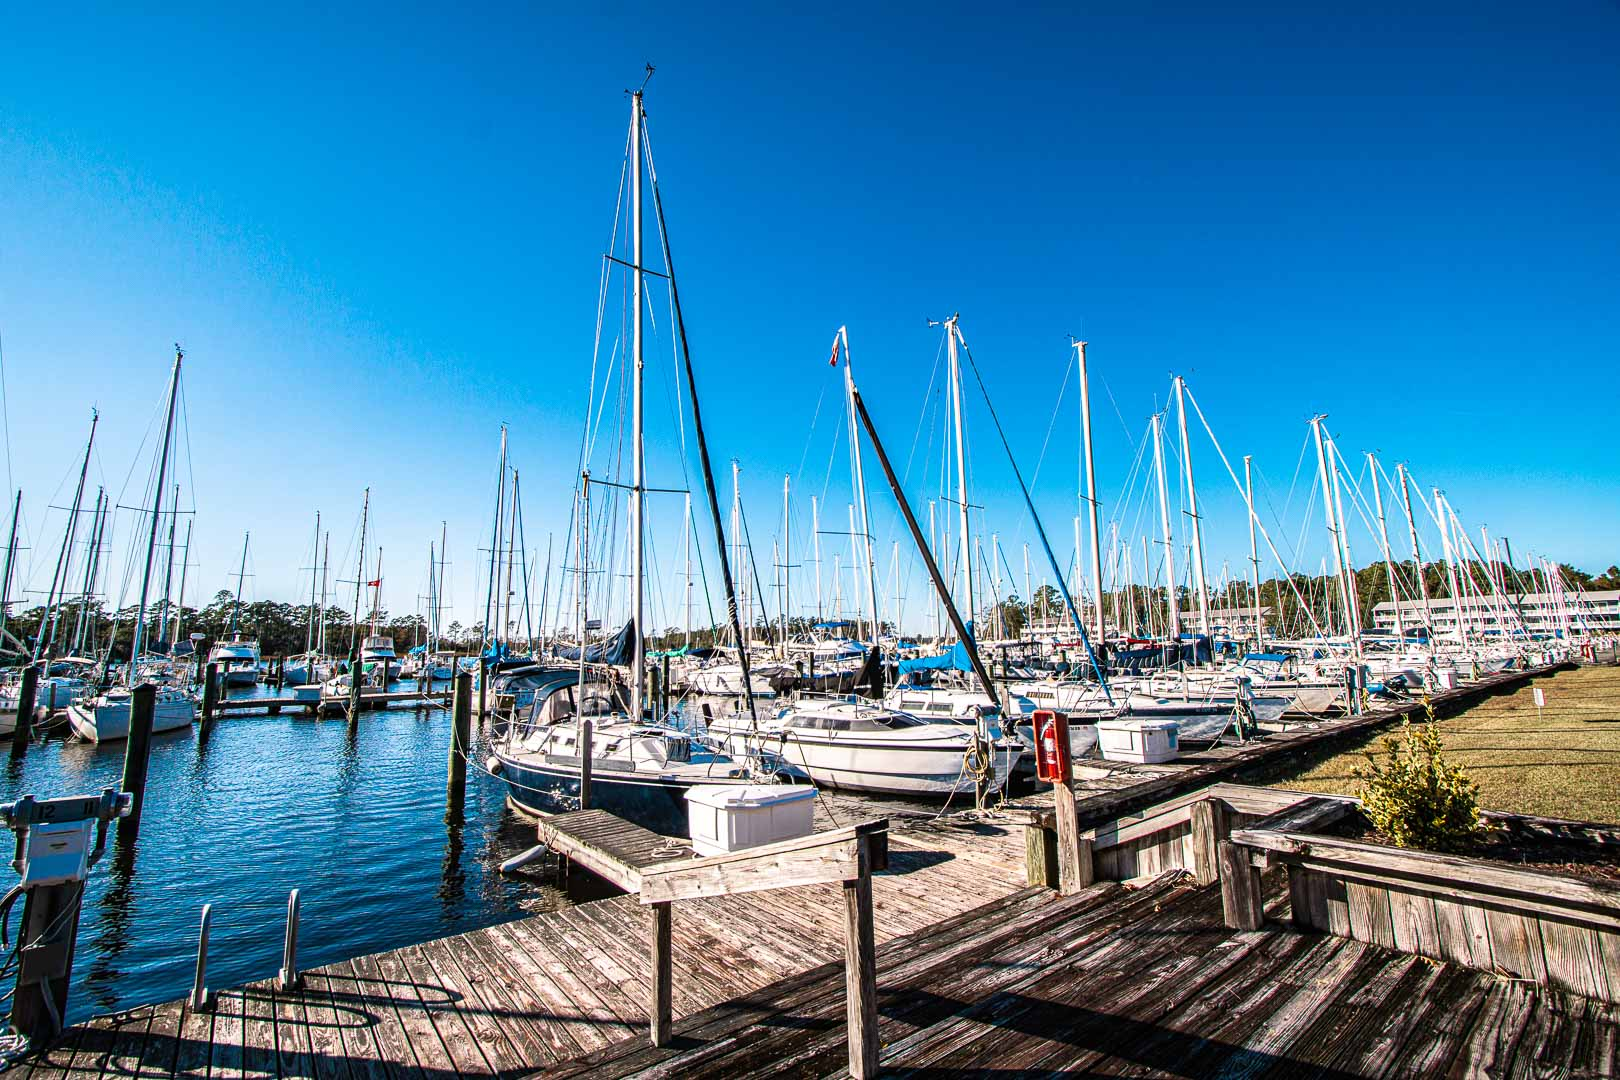 A scenic view of the boat dock at VRI's Harbourside II in New Bern, North Carolina.